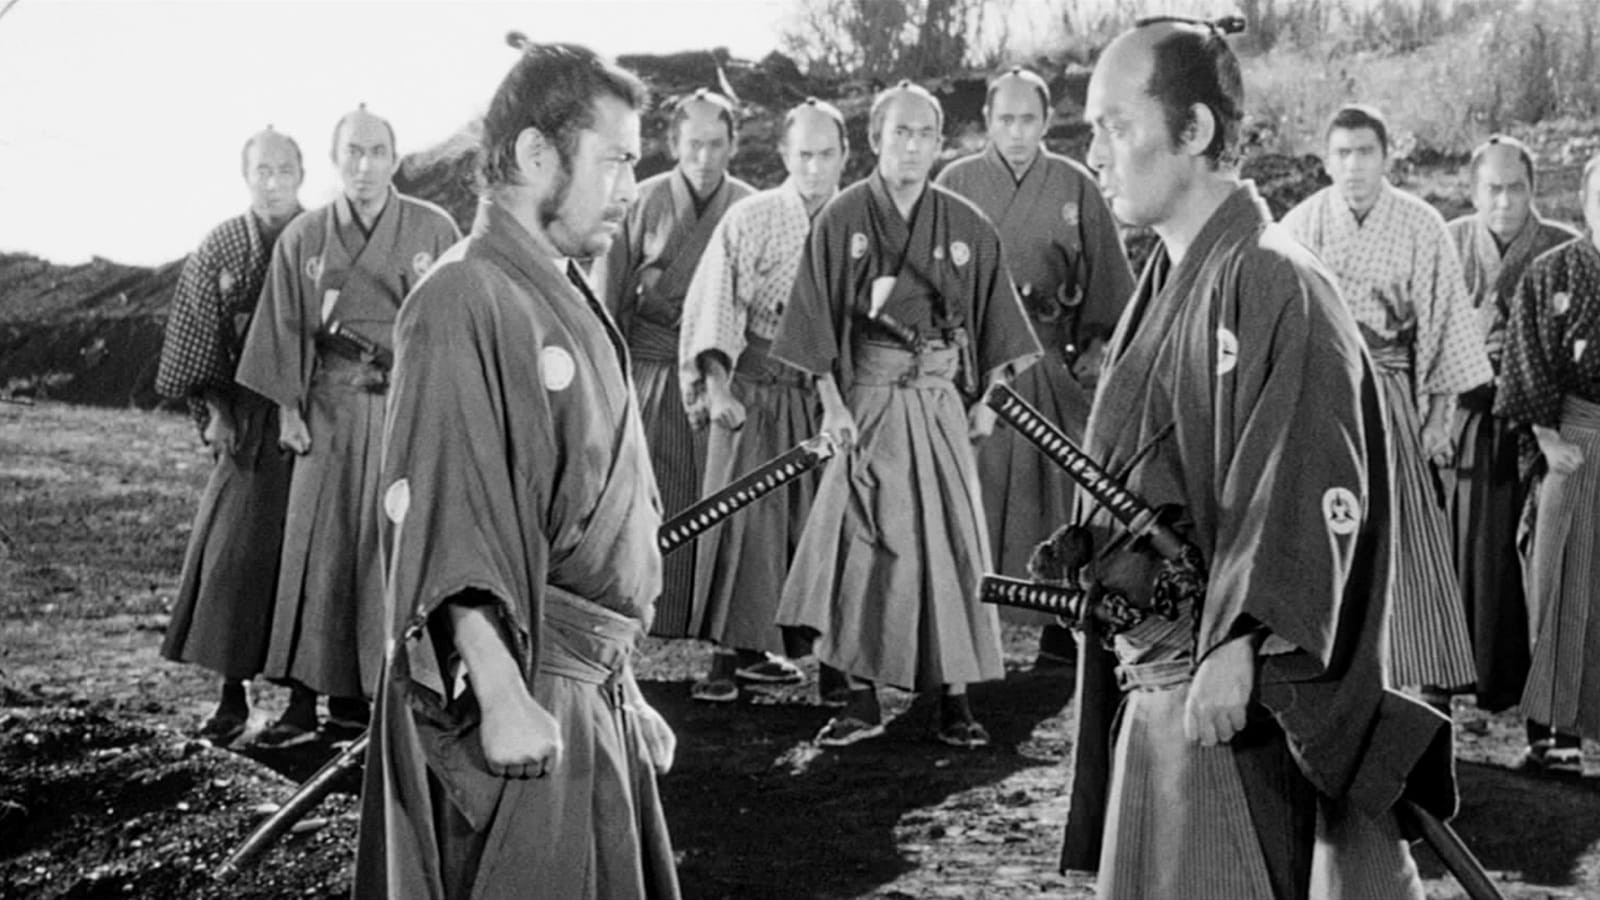 Sanjuro: Return of the Ronin